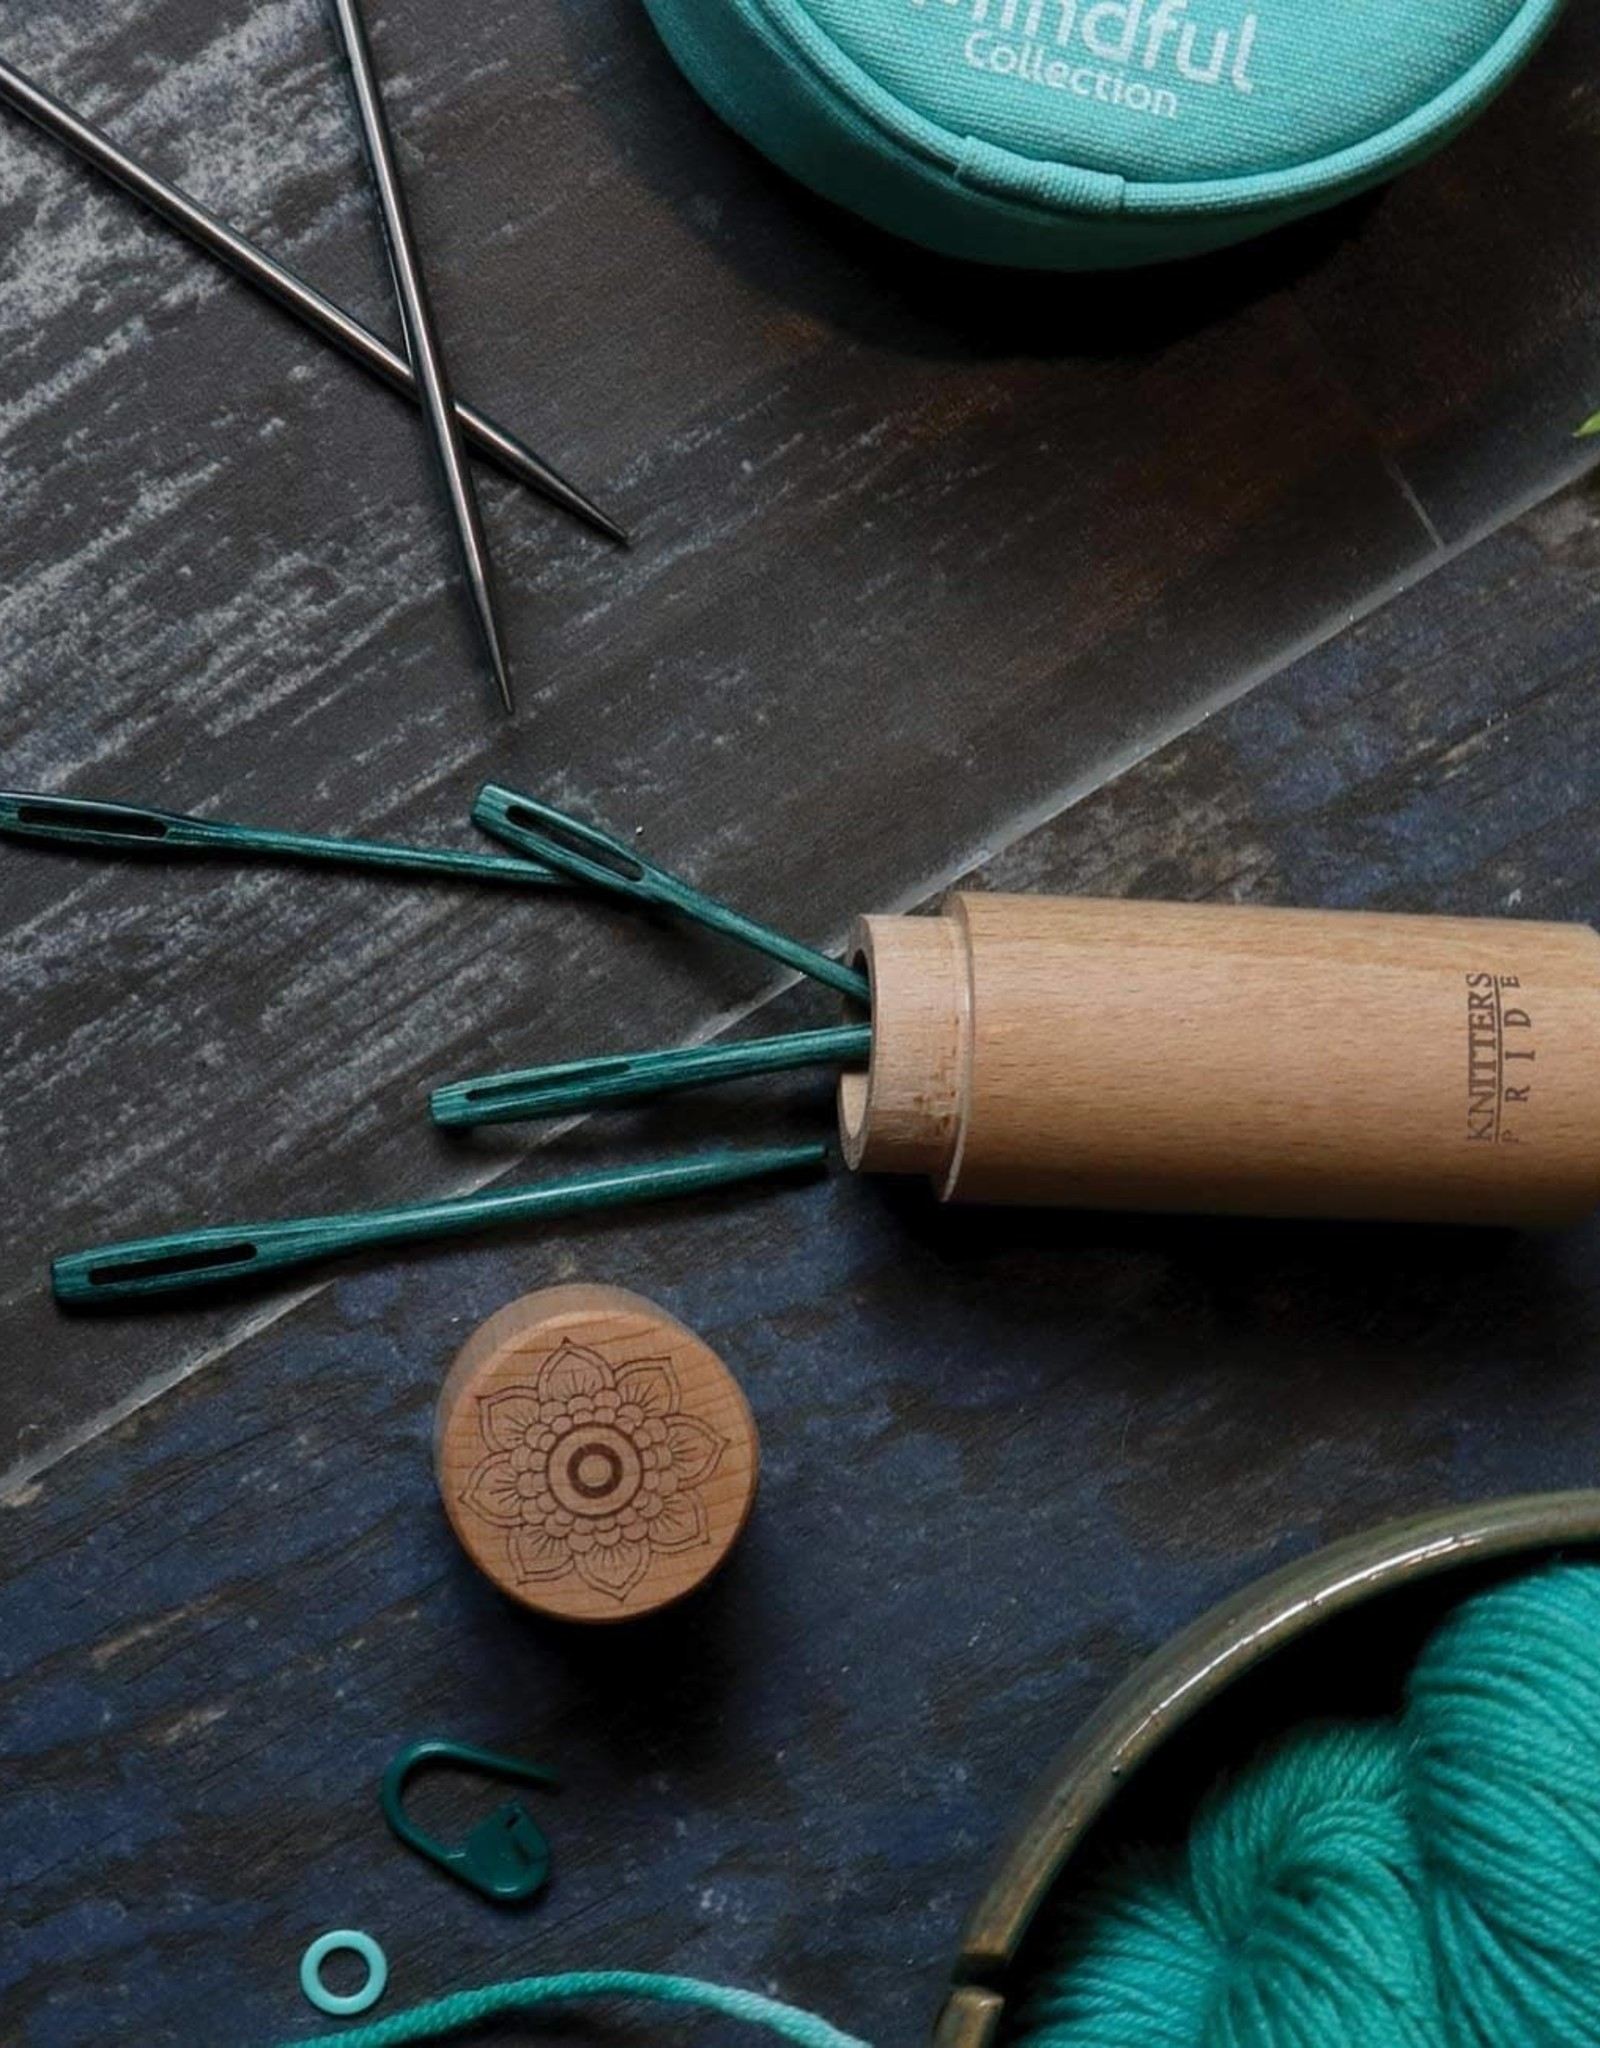 Knitter's Pride Teal Wooden Darning Needles: Mindful Collection from Knitter's Pride